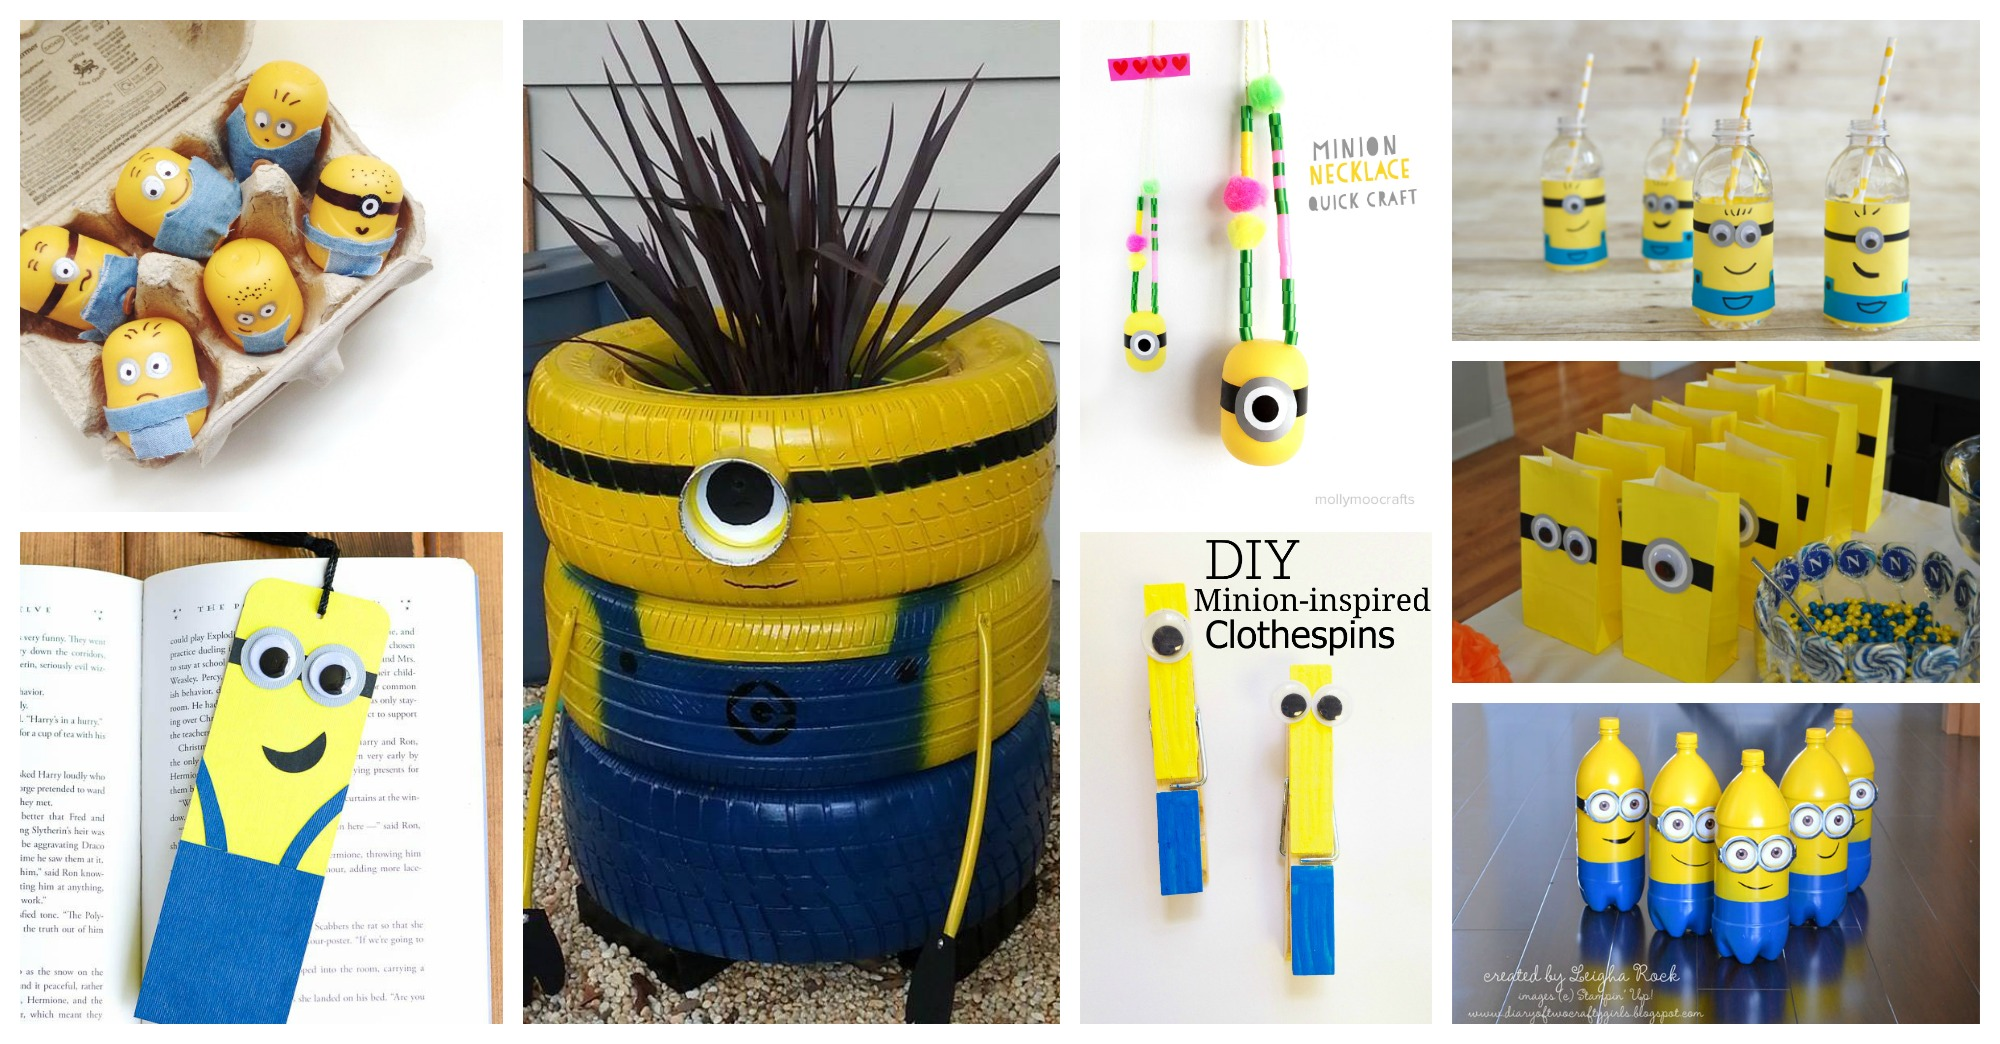 Stunning DIY Minions-Inspired Crafts That All Kids Will Love